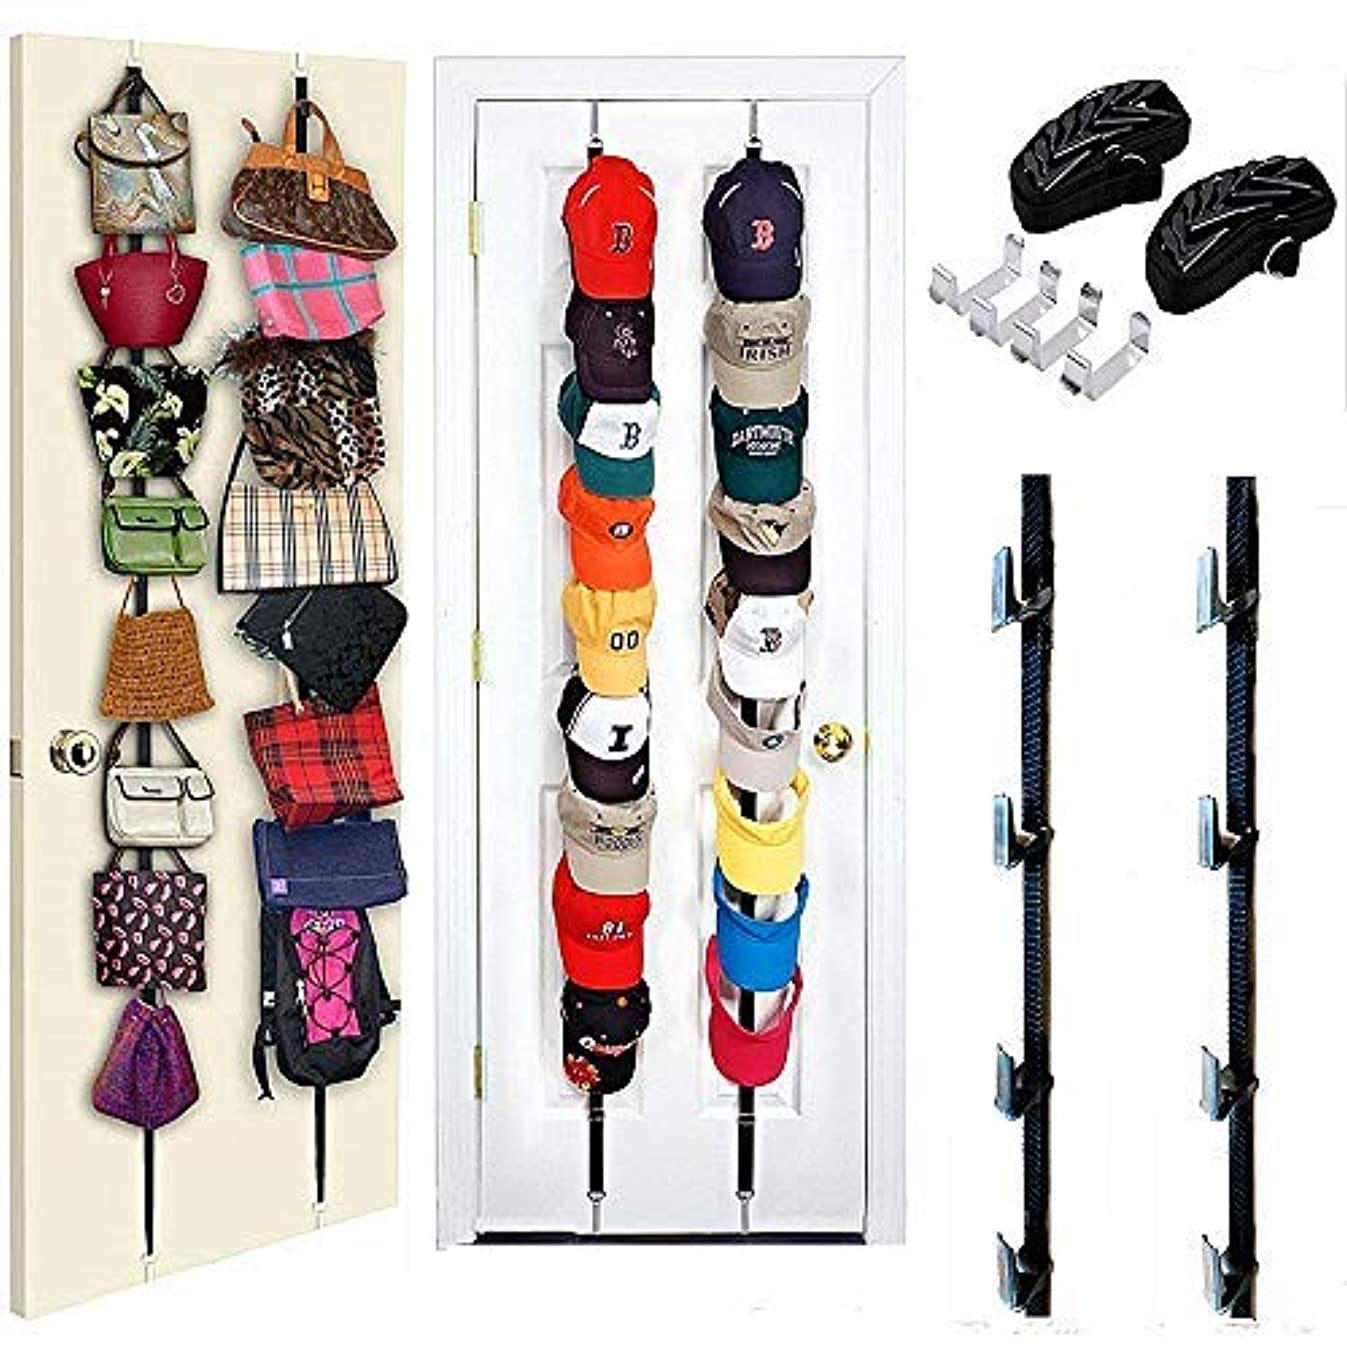 TONIFUL 2 Pack Hat Rack,Bag Rack Organizer,Cap Rack Organizer,Holds up to 16 Caps for Baseball, Ball Caps,Bags,Hat Storage for Door, Wall, or Closet Organize